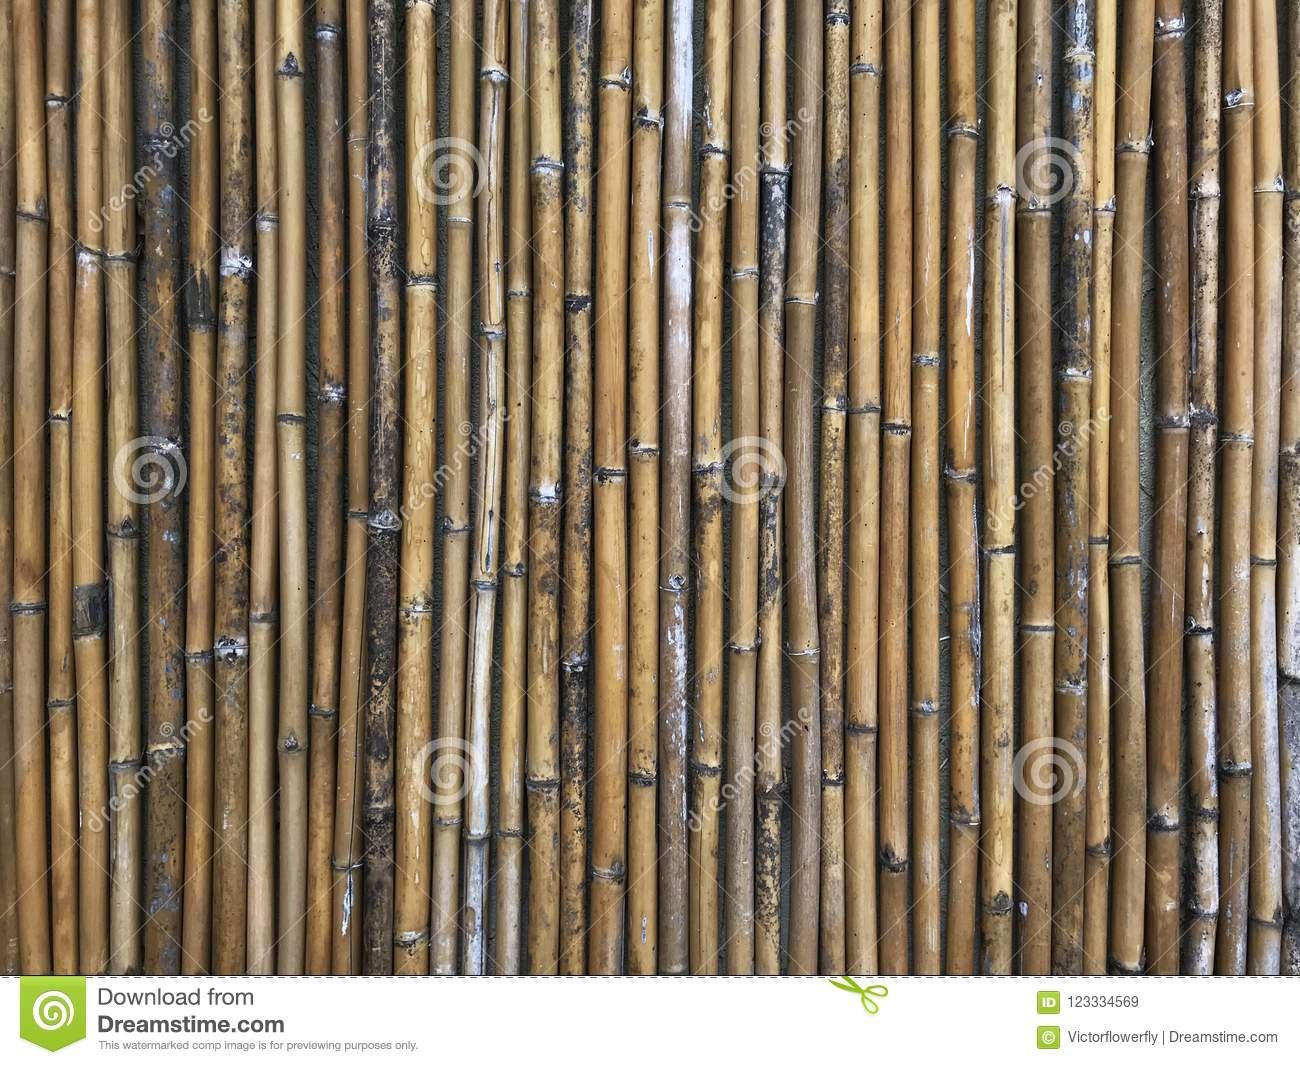 Bamboo wood material pattern background. Interior design concept good for backdrop, wallpaper